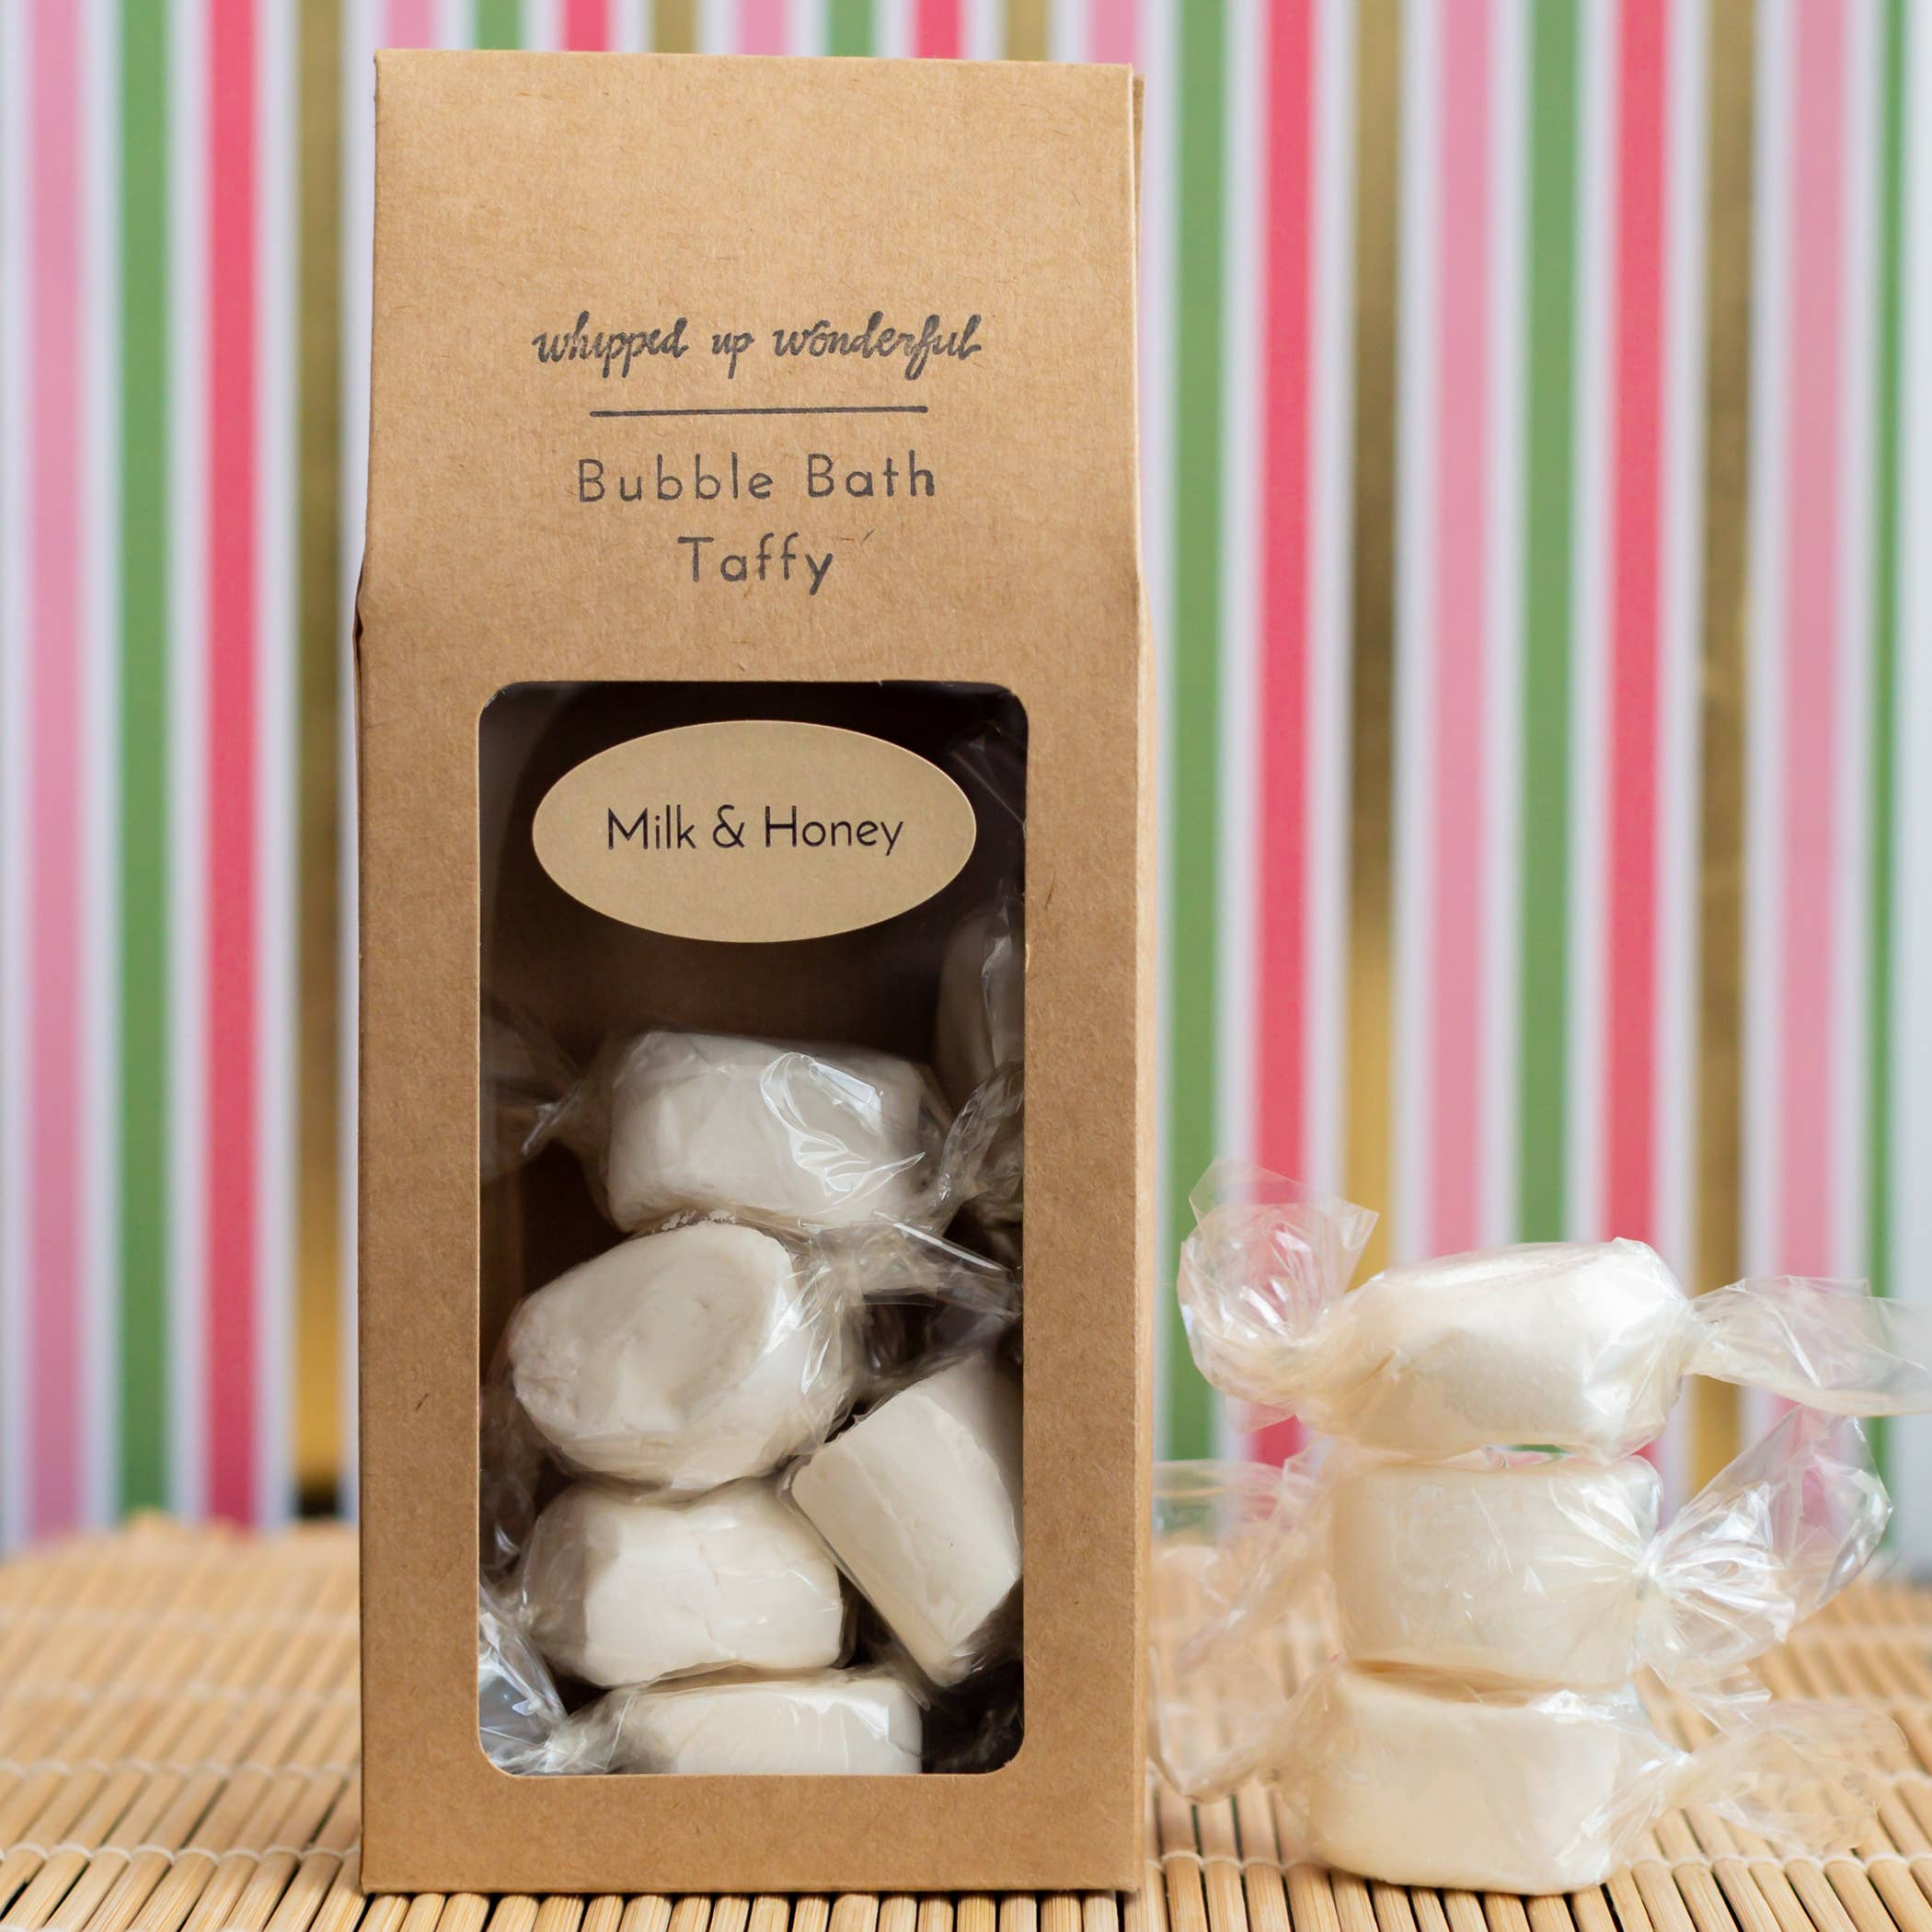 Whipped Up Wonderful - Milk & Honey Bubble Bath Taffy - 6 Pieces